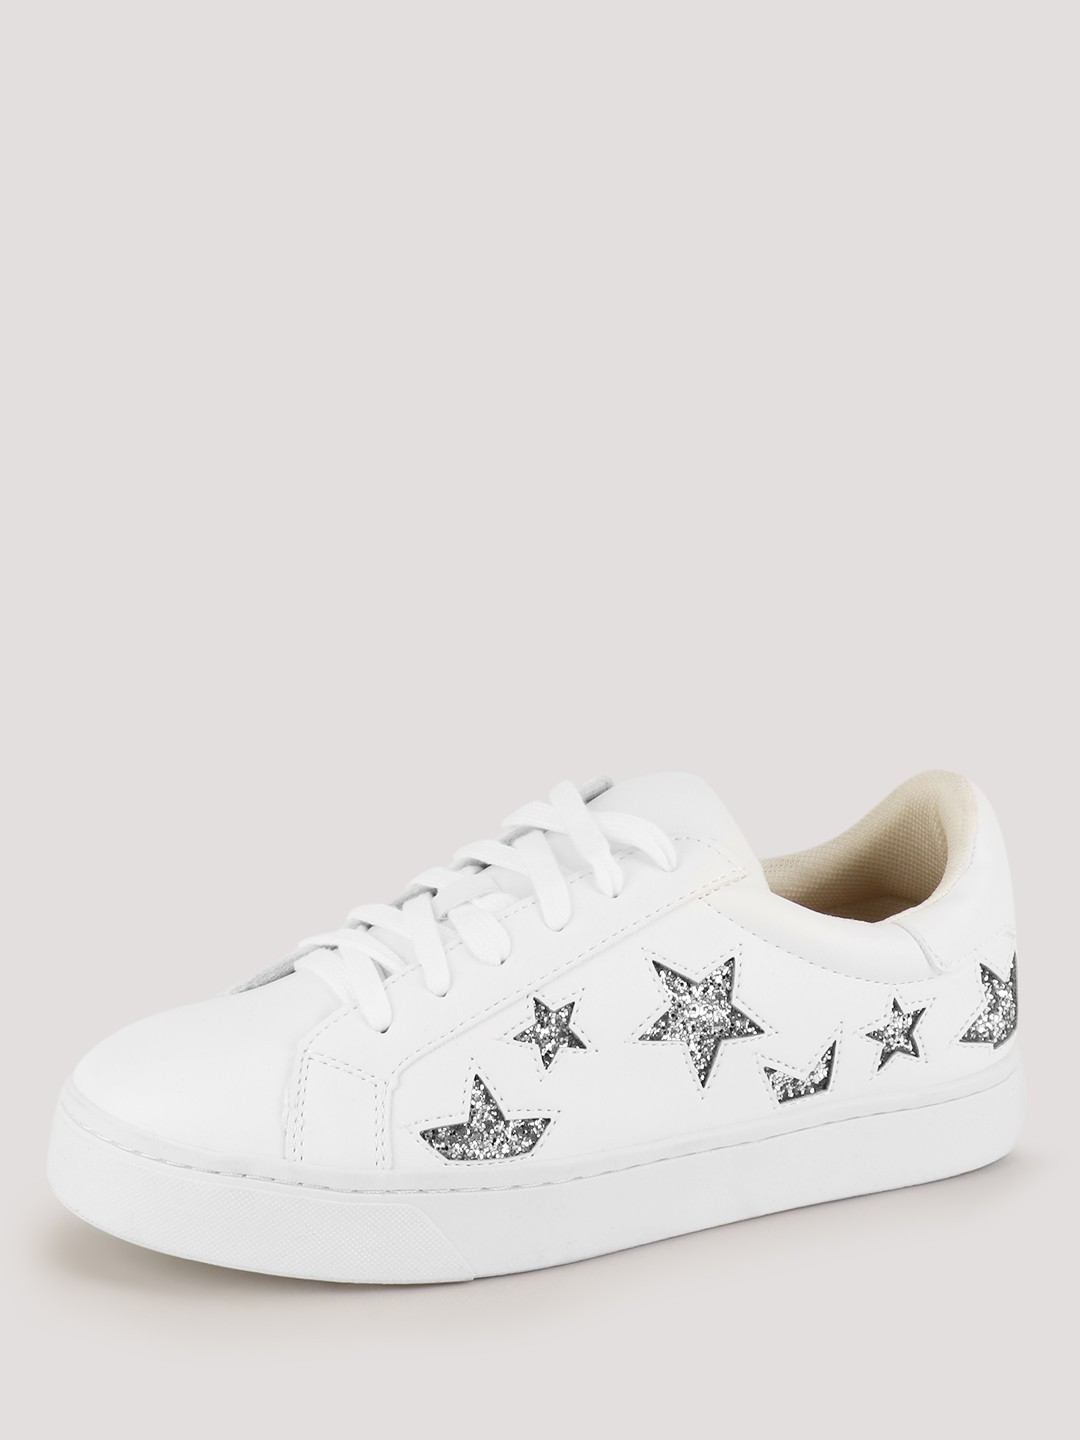 Buy Star Lace Up Glitter Shoes For Women - Womens White Trainers -2034